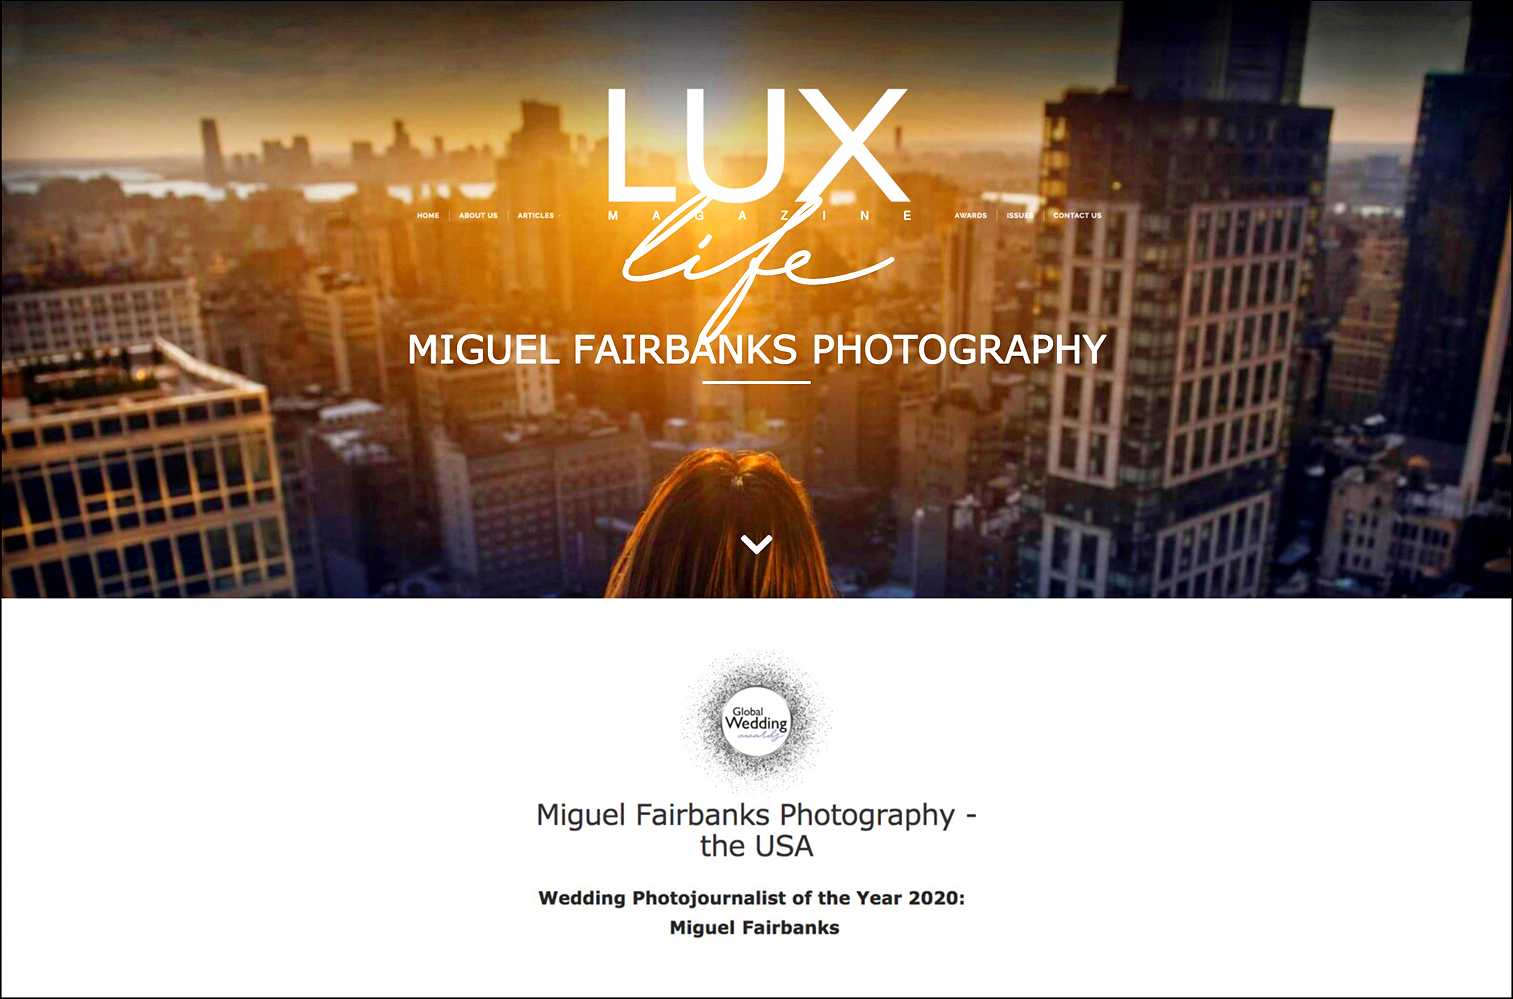 2020-LUX-Life-Wedding-Photojournalist-of-Year